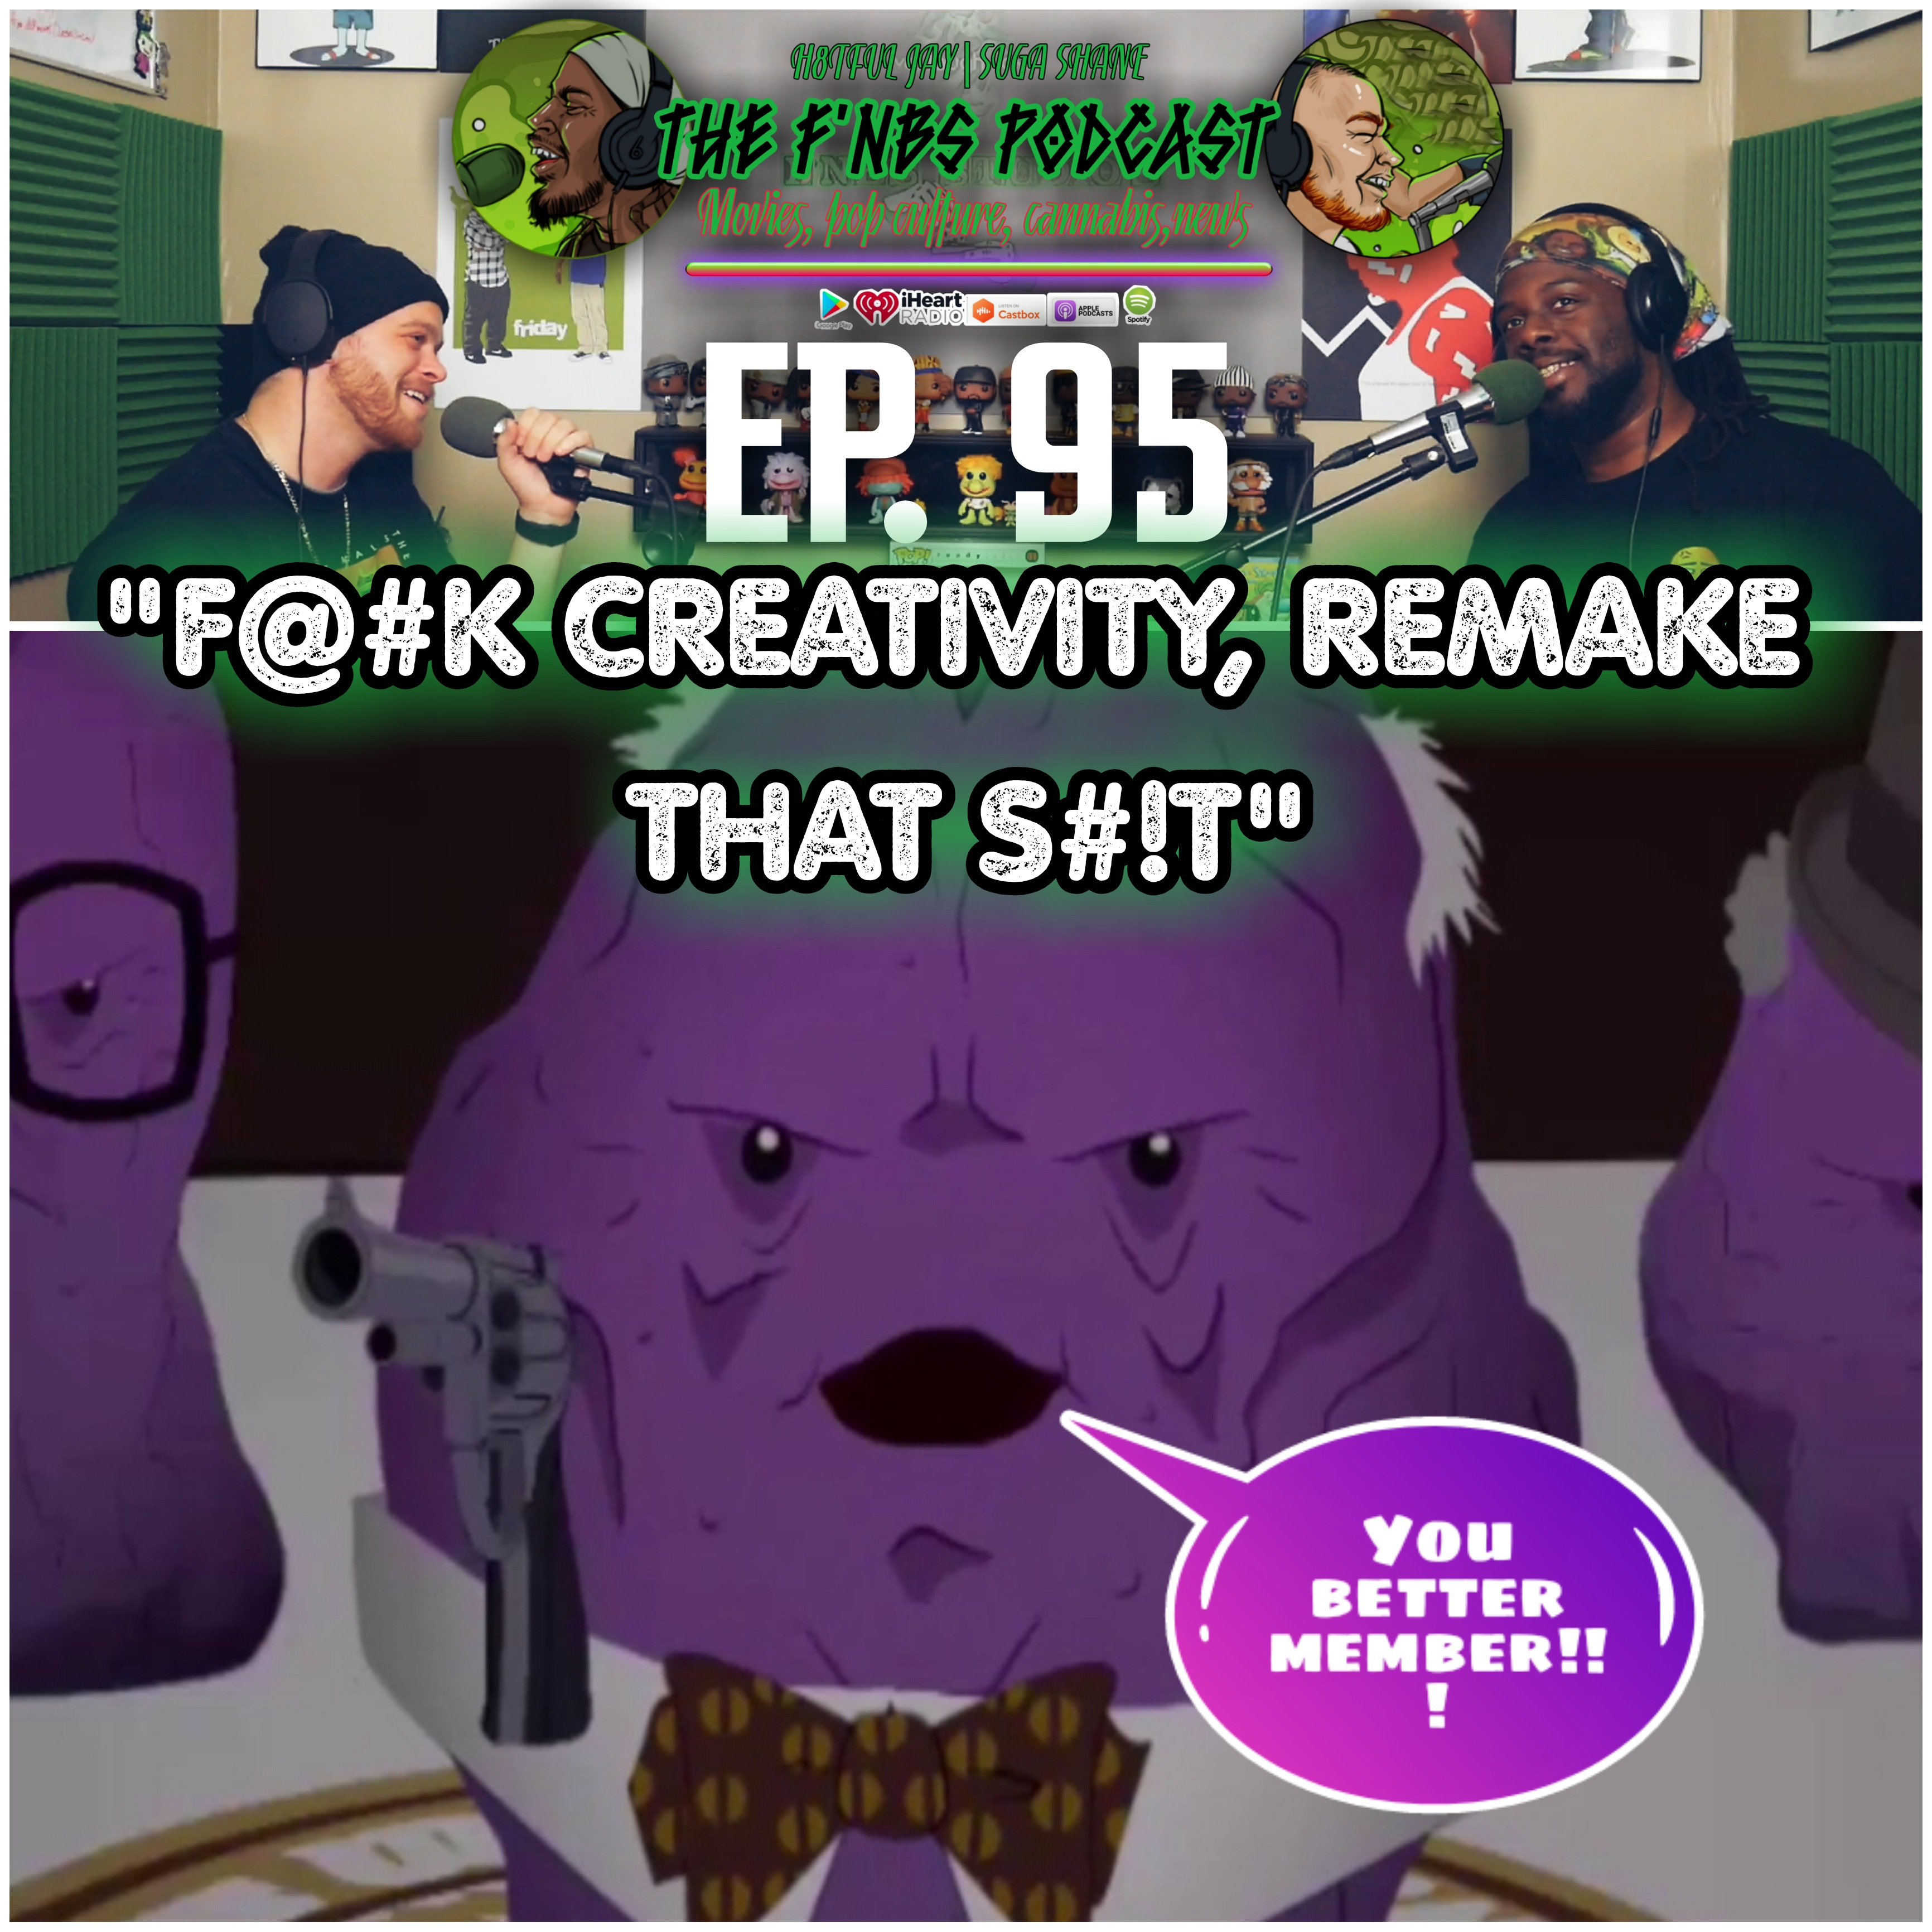 """Artwork for THE F'NBS PODCAST EP. 95 """"F@#K CREATIVITY, REMAKE THAT S#!T!!"""""""